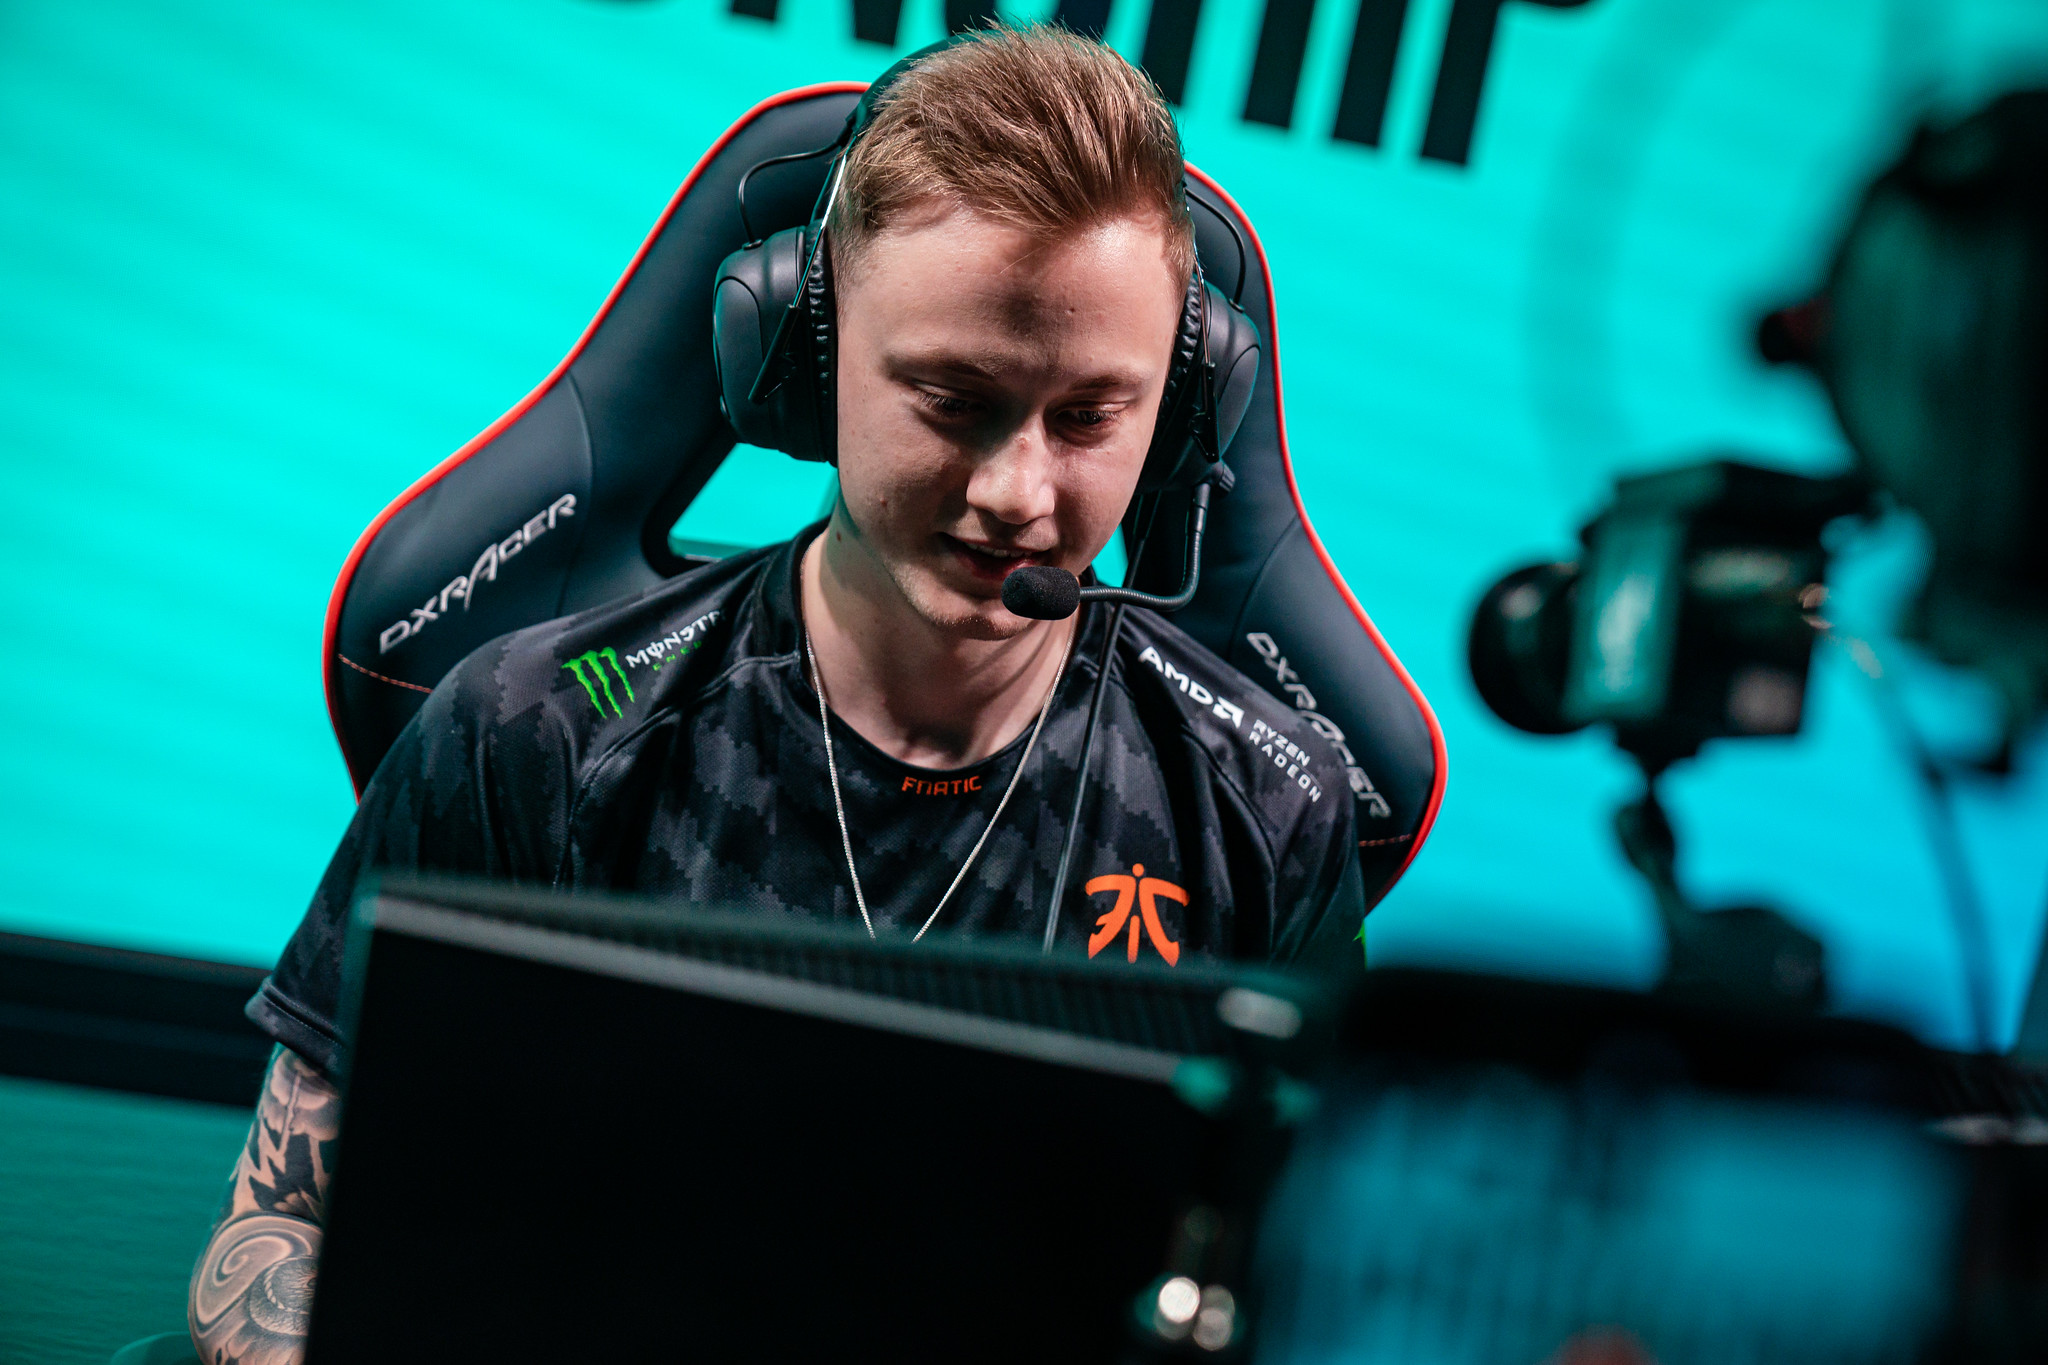 Fnatic sub in MagiFelix for Rekkles for week 5 of the 2019 LEC ...